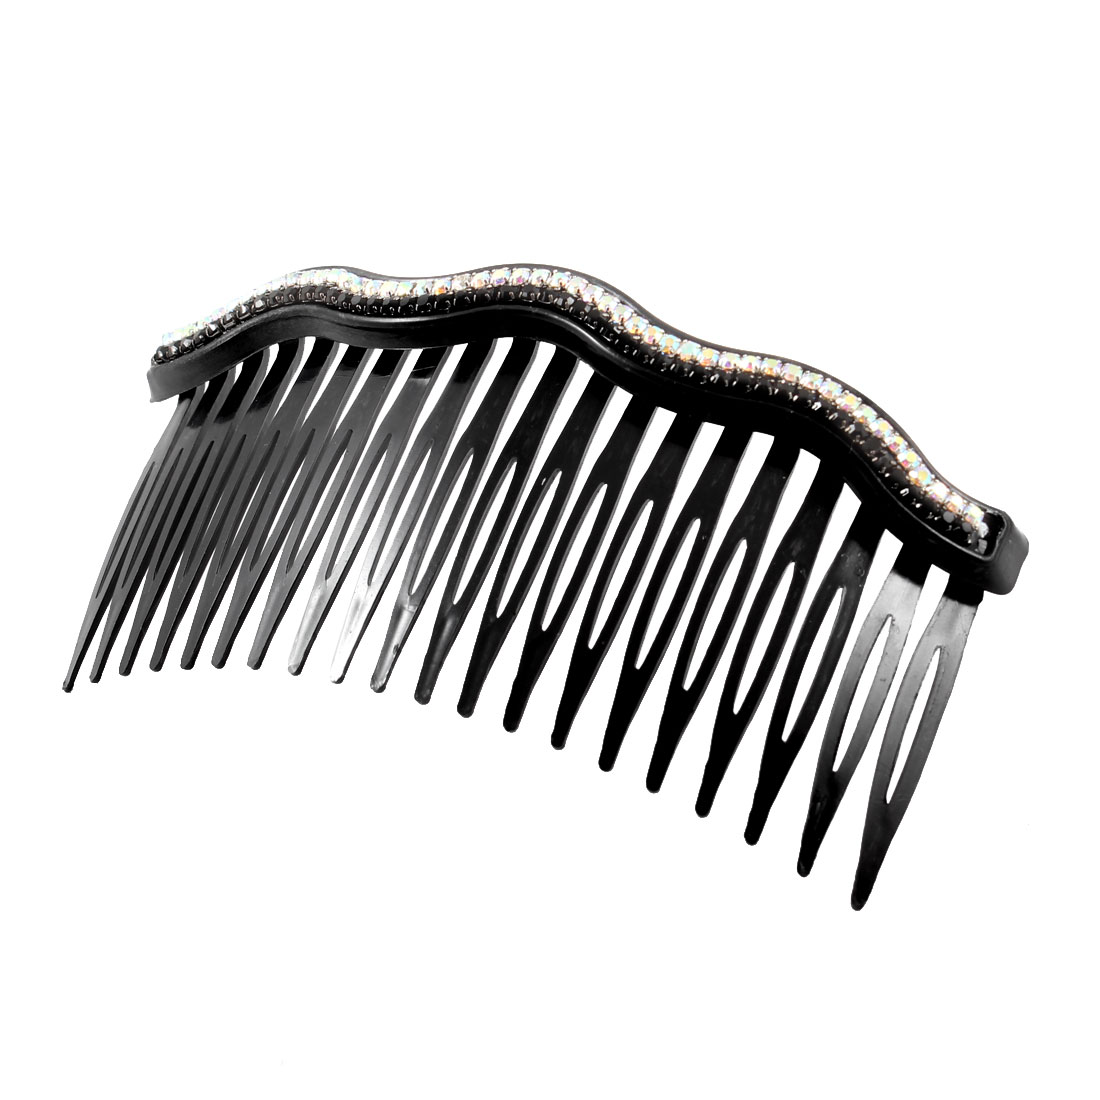 Lady Women Plastic Artificial Rhinestones Inlaid 20 Tooth Hair Comb Clip Black